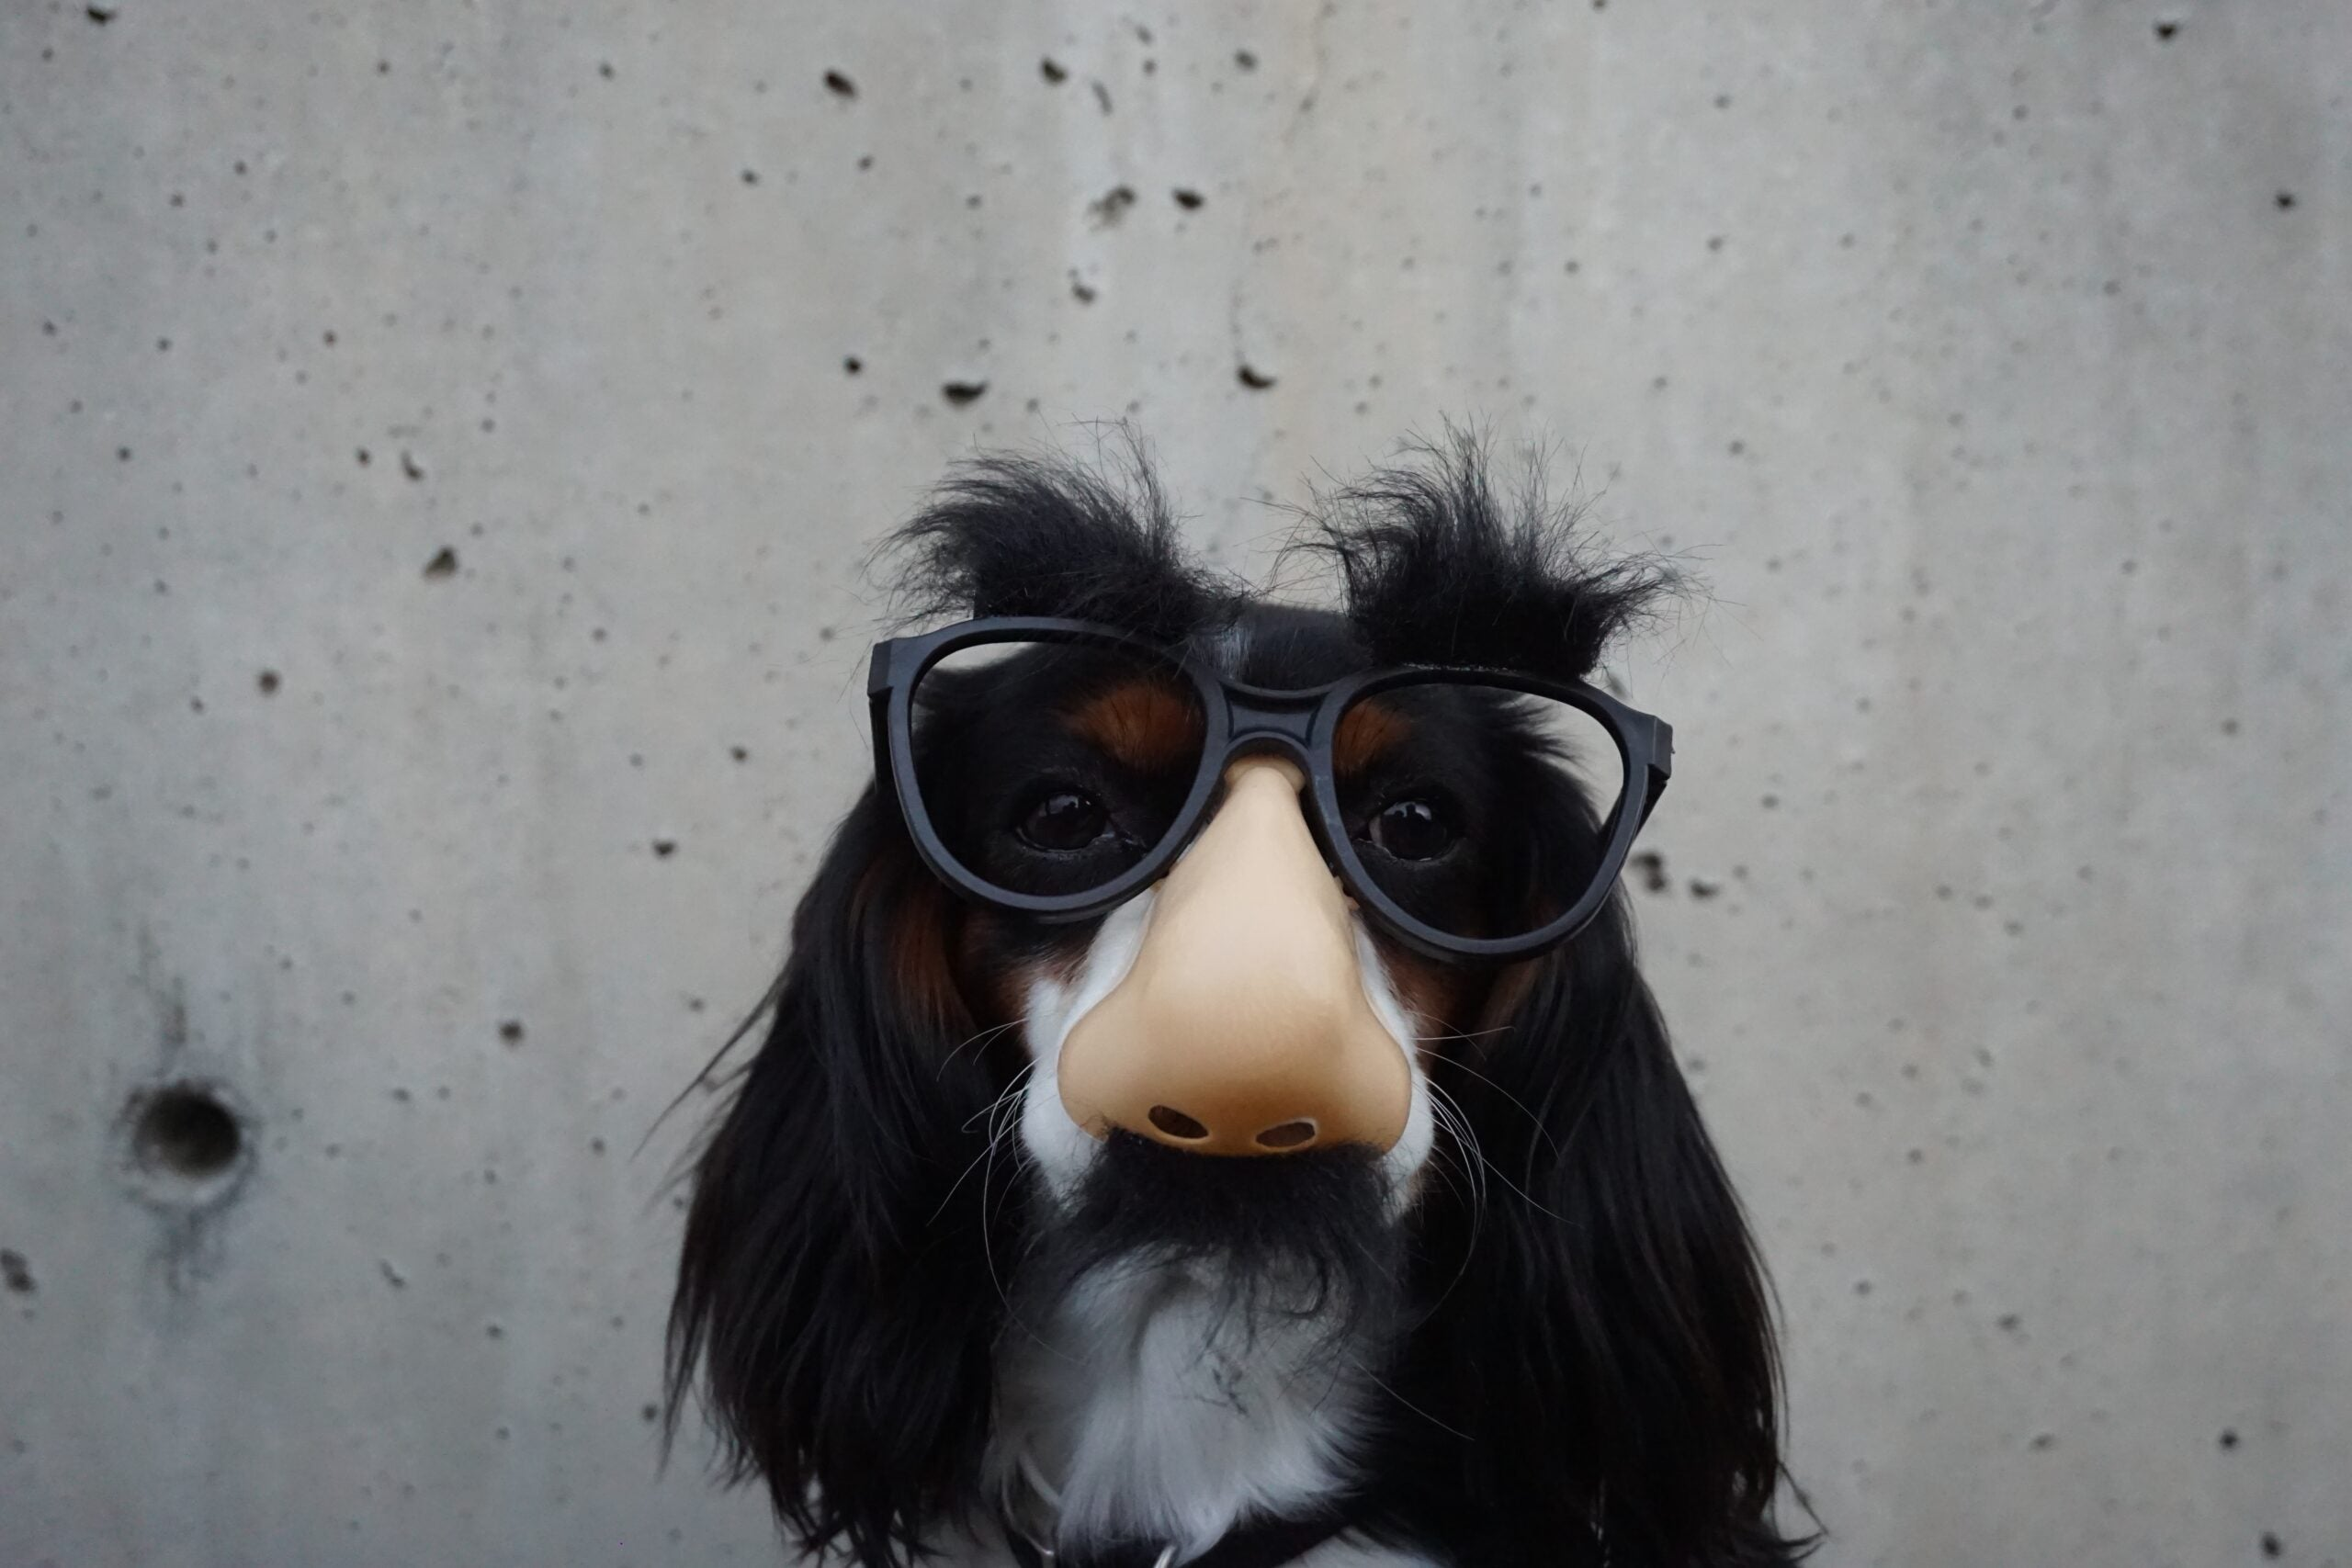 To find drugs and explosives, scientists take cues from dog noses